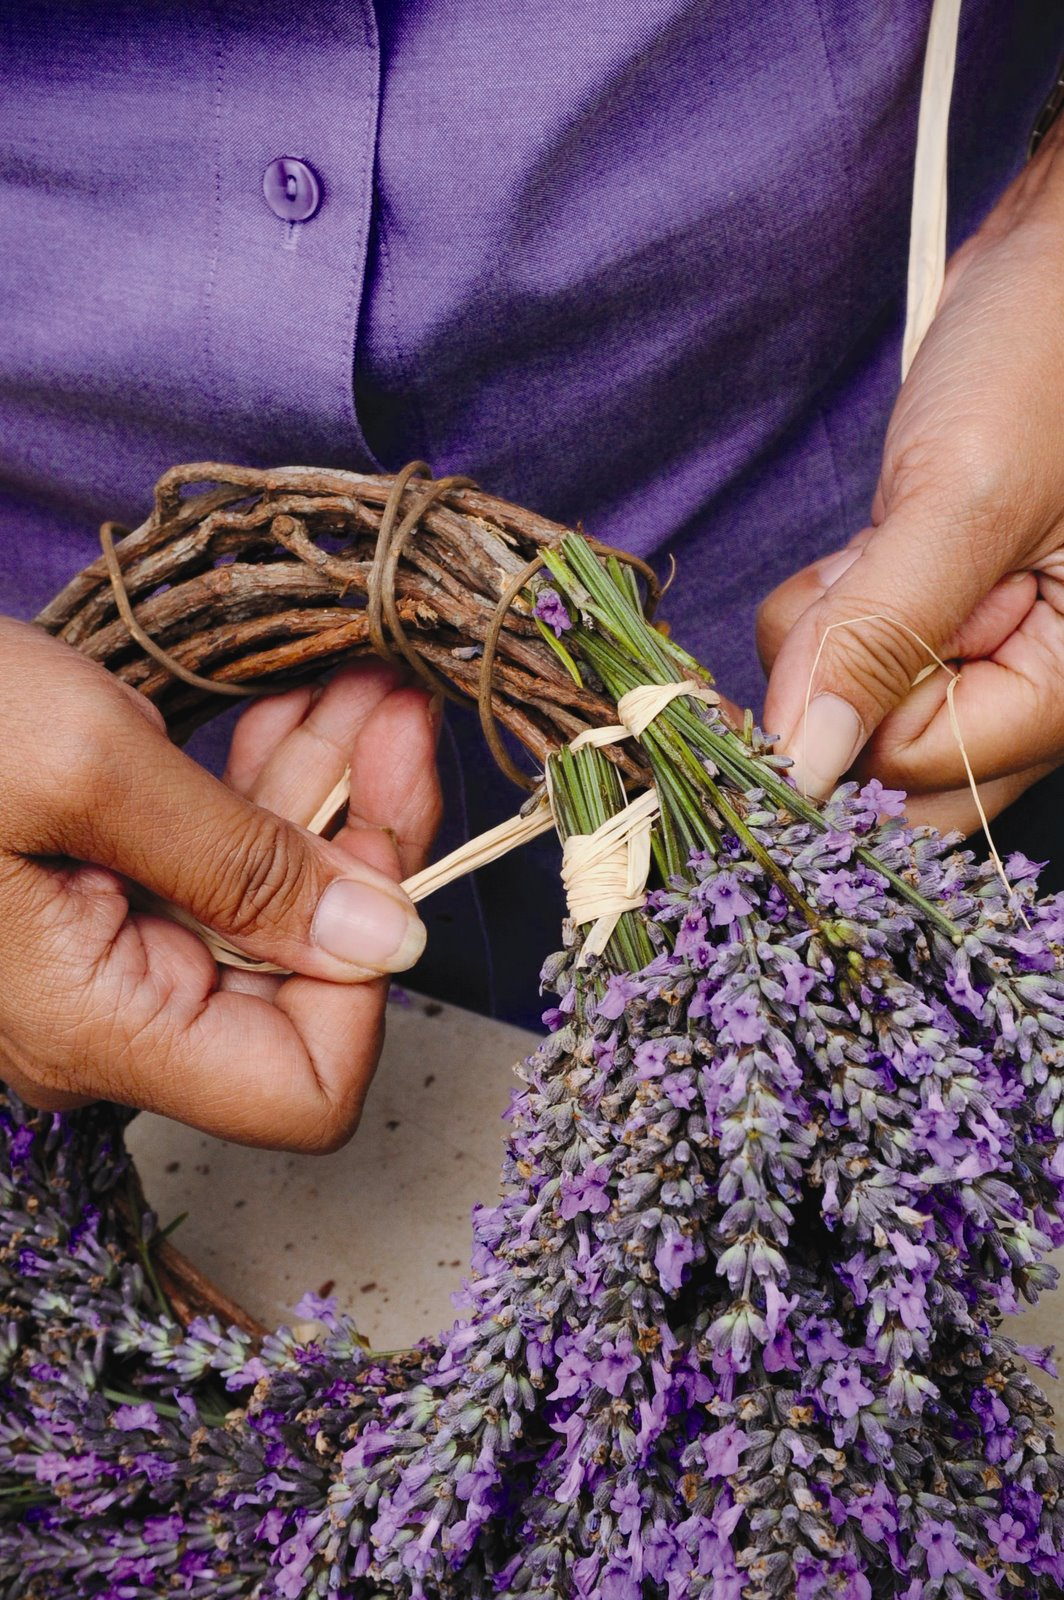 Photo: Step three of the lavender wreath craft project. PHOTO CREDIT: Ali'i Kula Lavender/The Maui Book of Lavender.